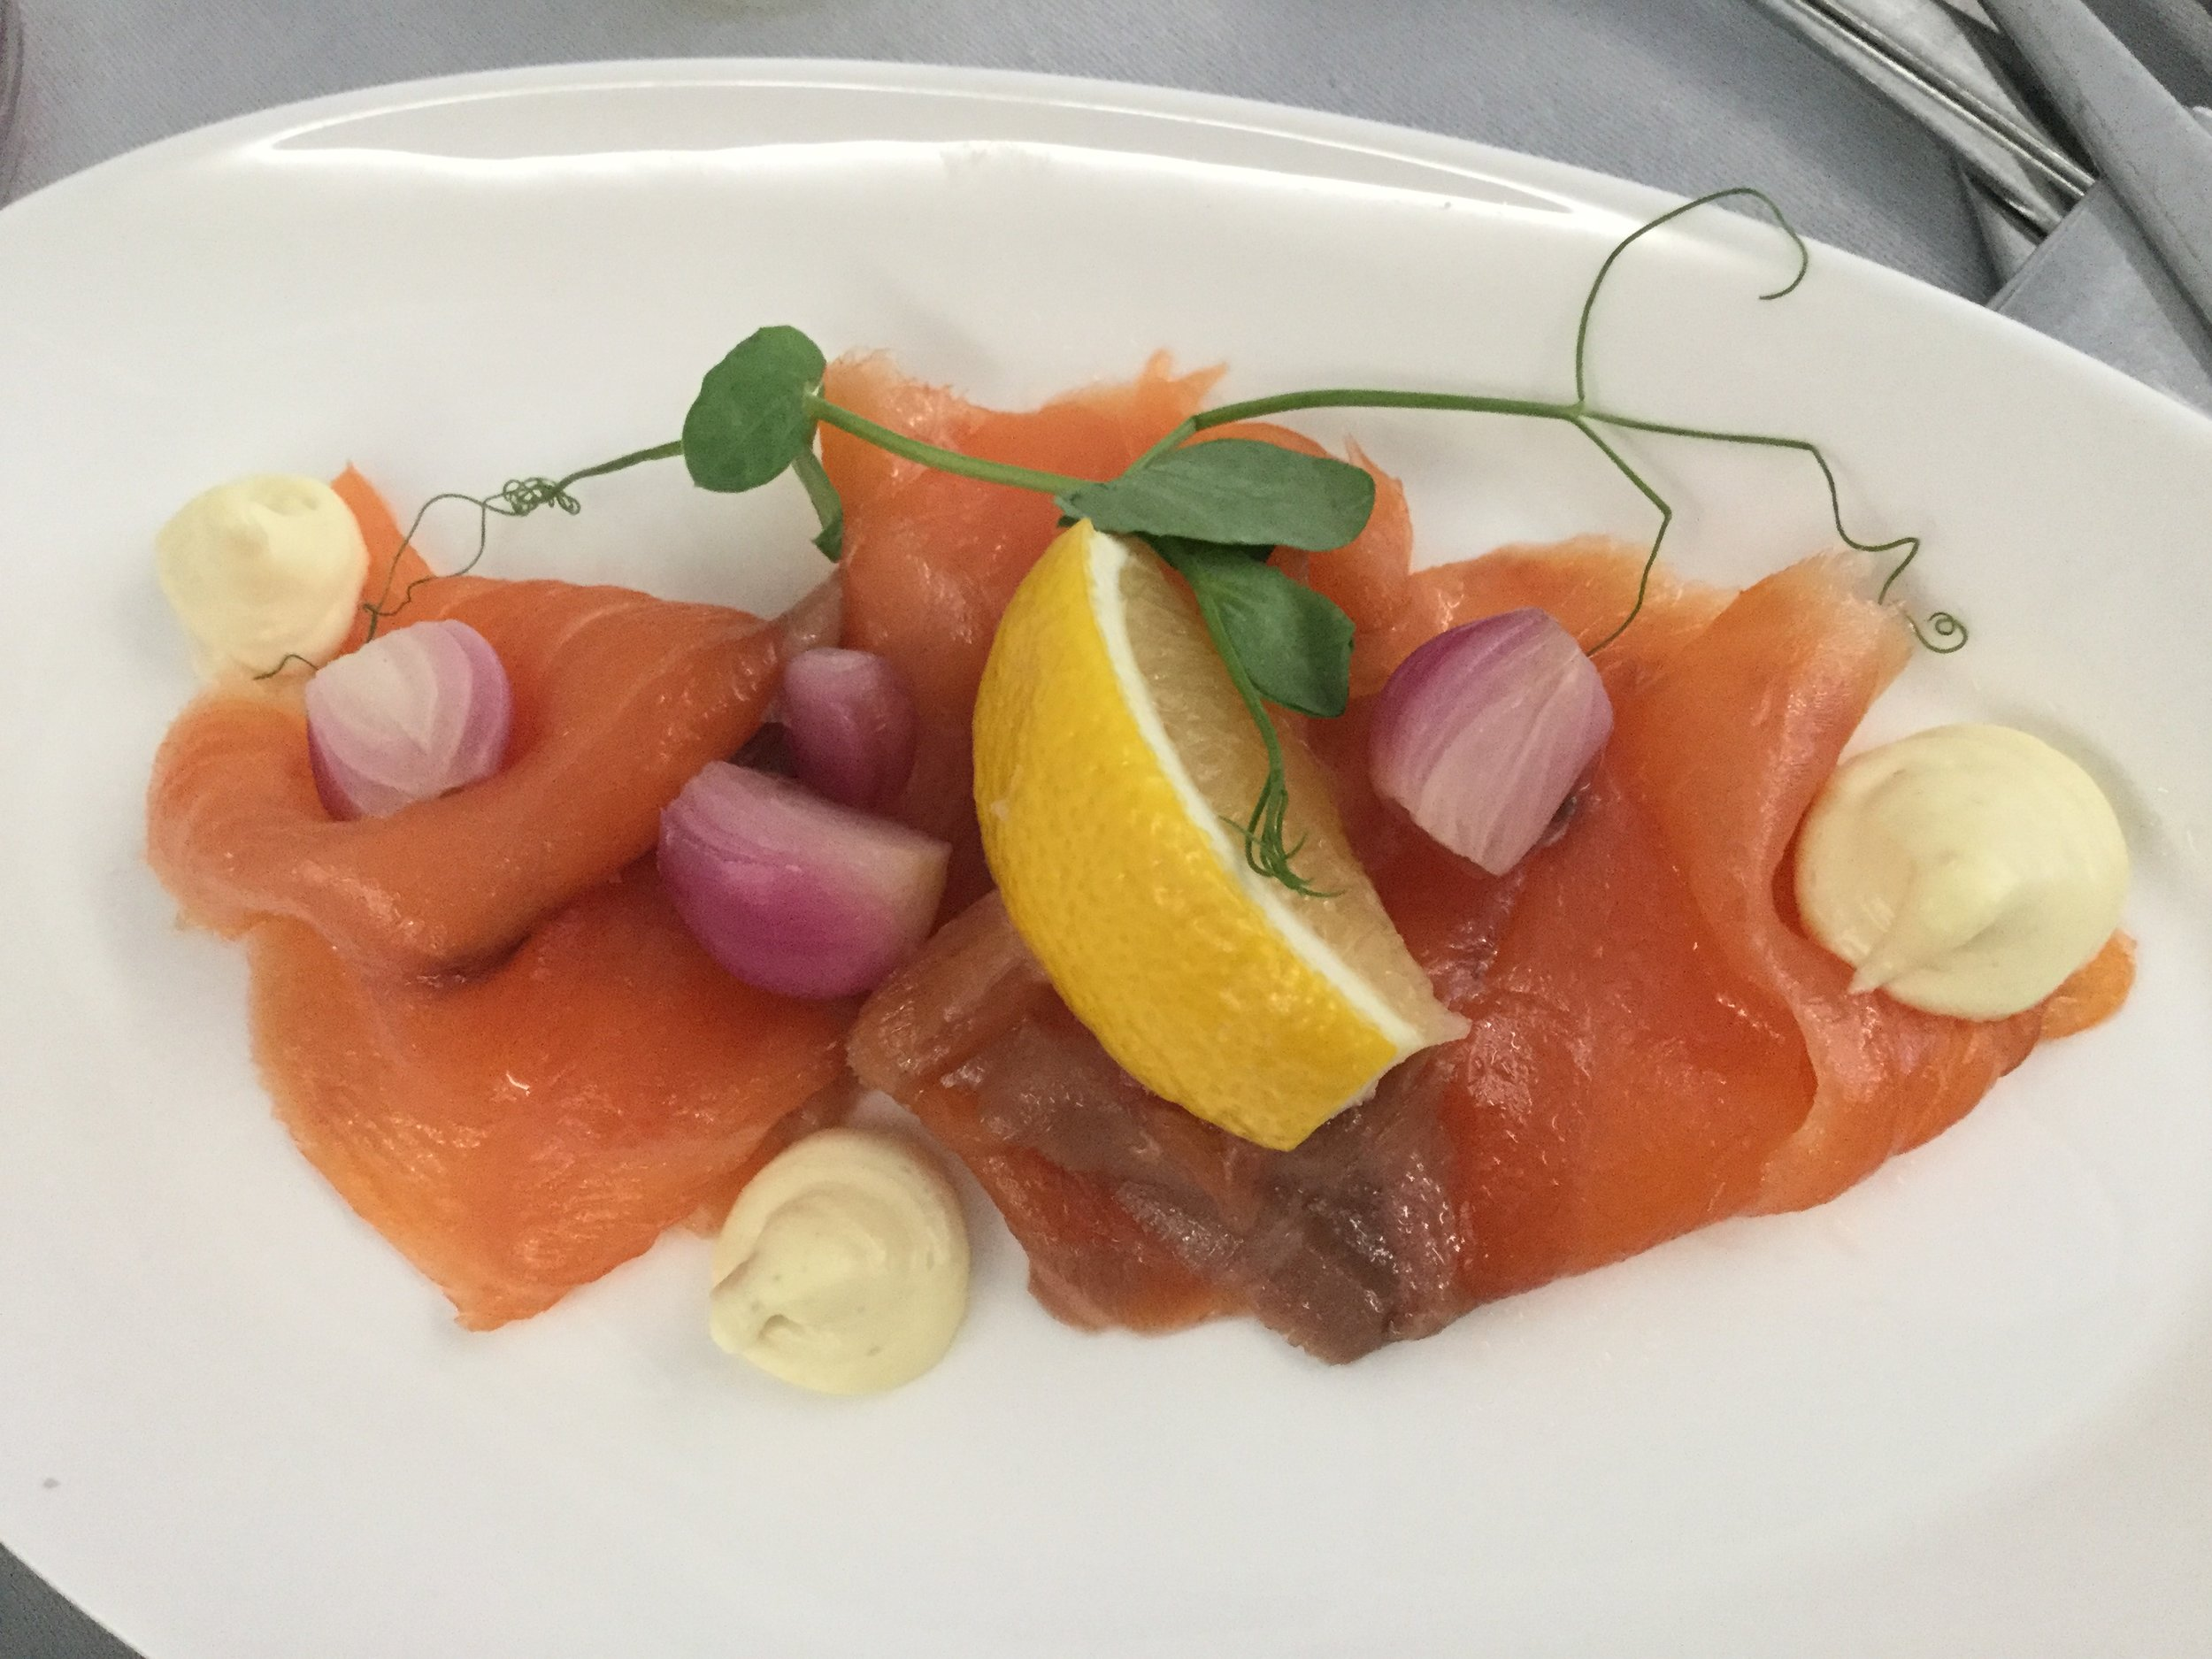 The Scottish Smoked Salmon, served as a lunch starter out of Heathrow, was absolutely heavenly!